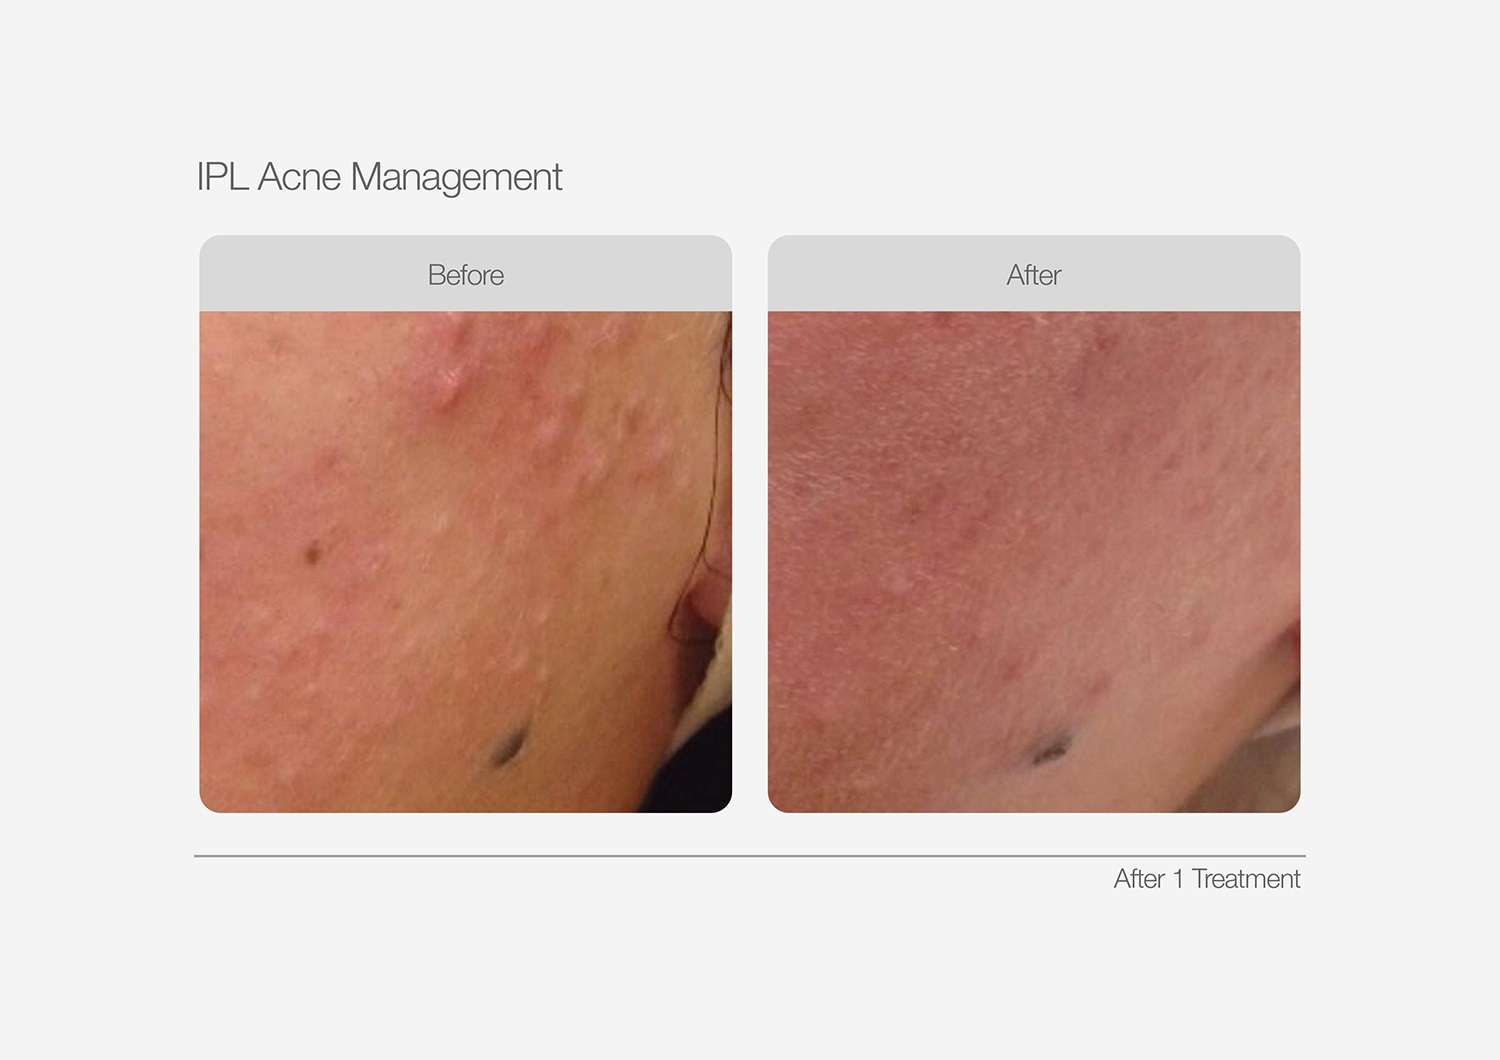 IPL-Acne-Management-Before-After-01